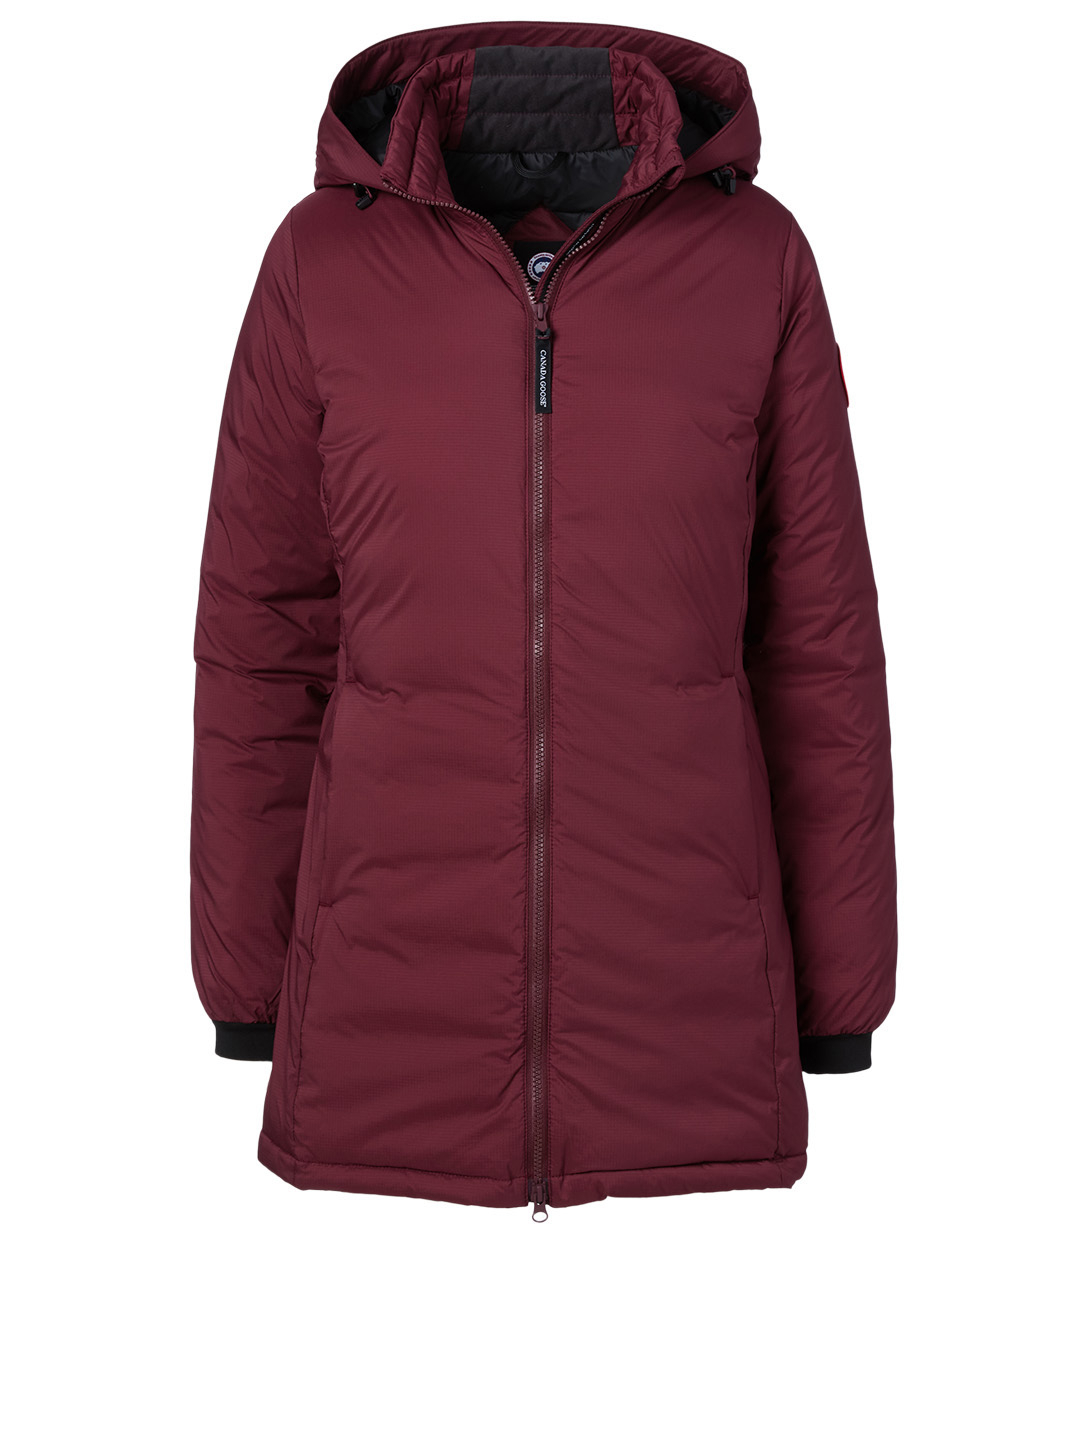 CANADA GOOSE Camp Hooded Jacket Women's Red